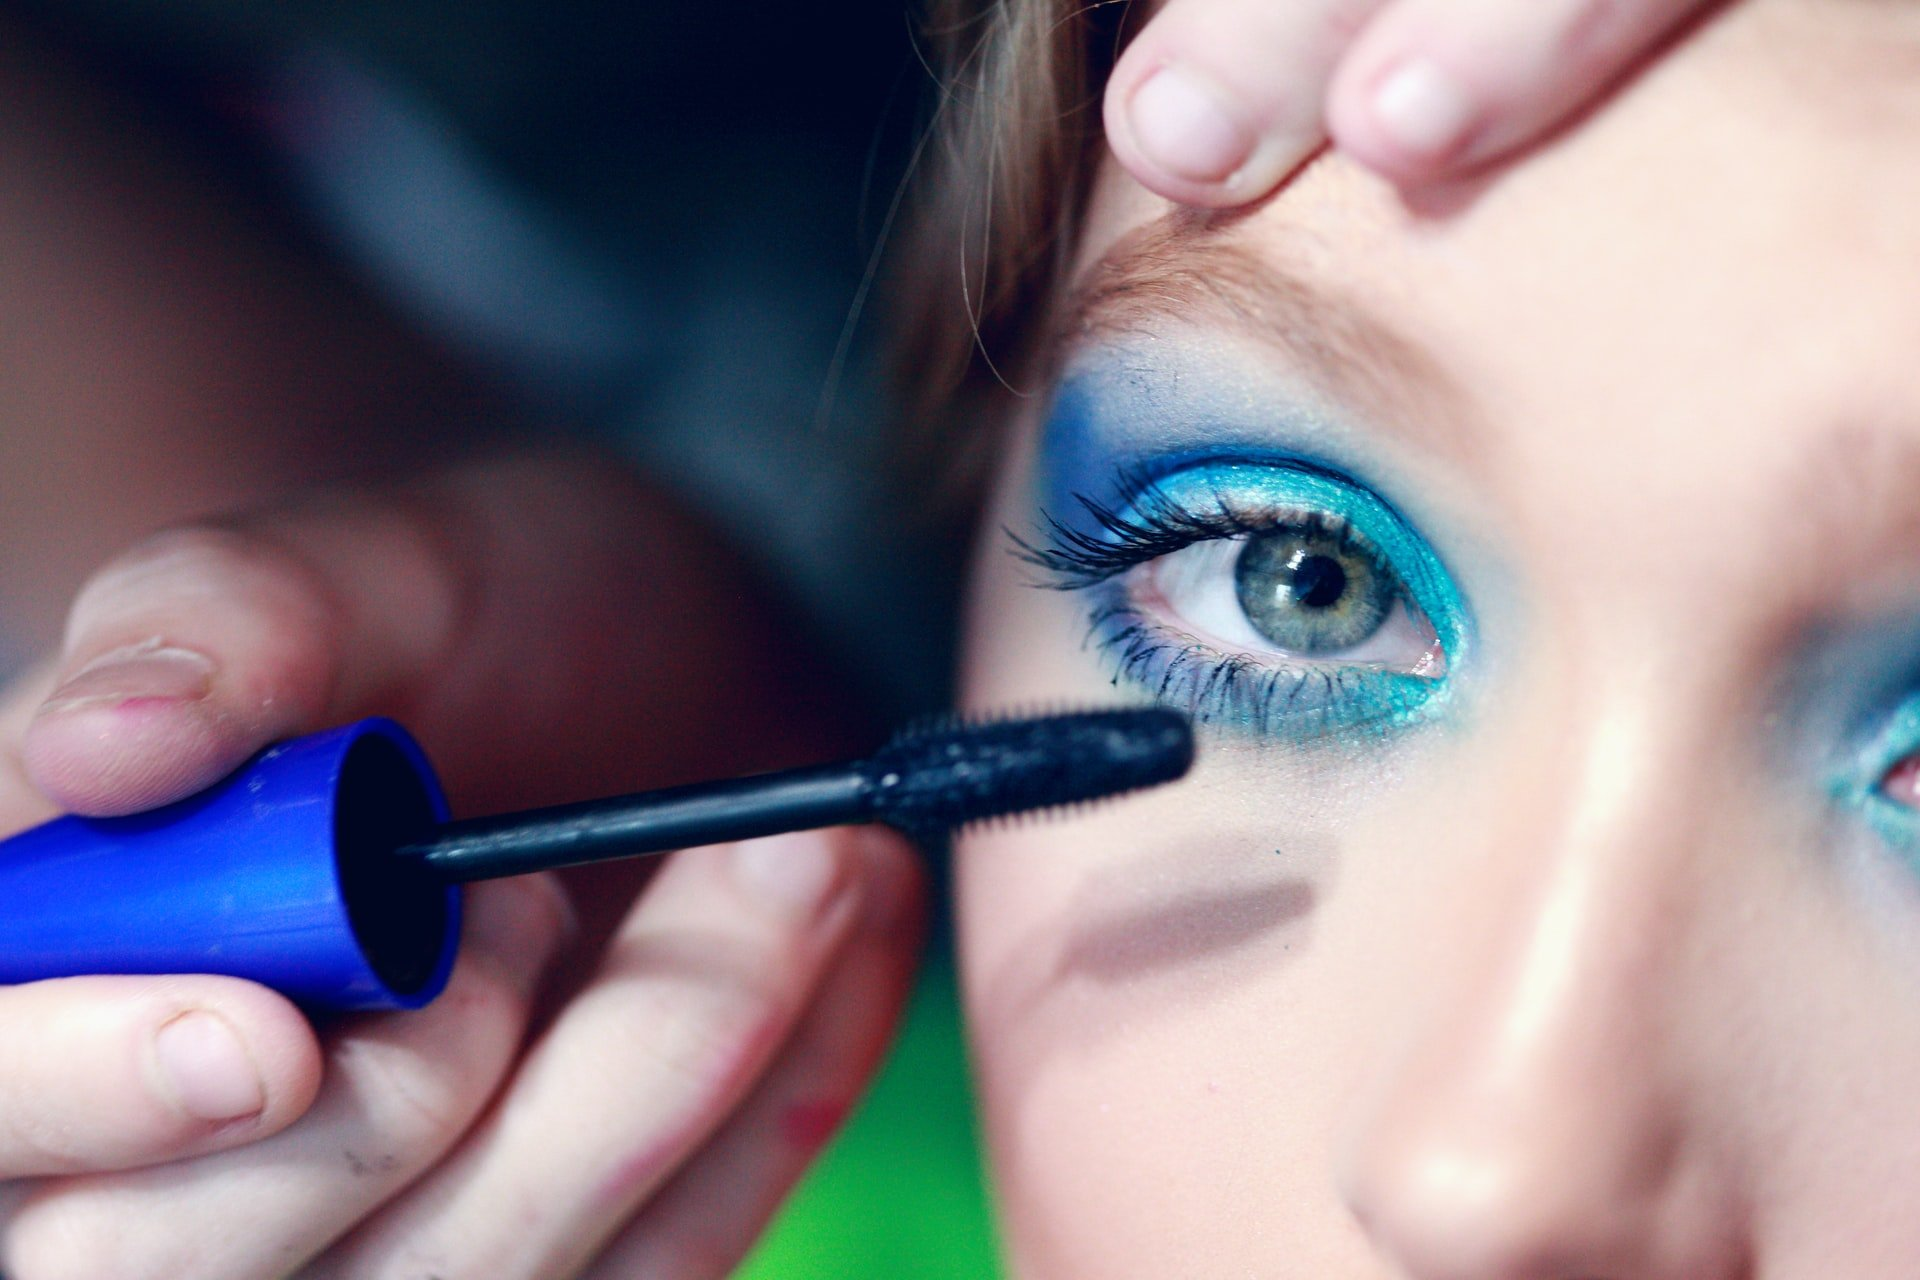 Mascara being applied to a woman's eyelash with blue eyeshadow